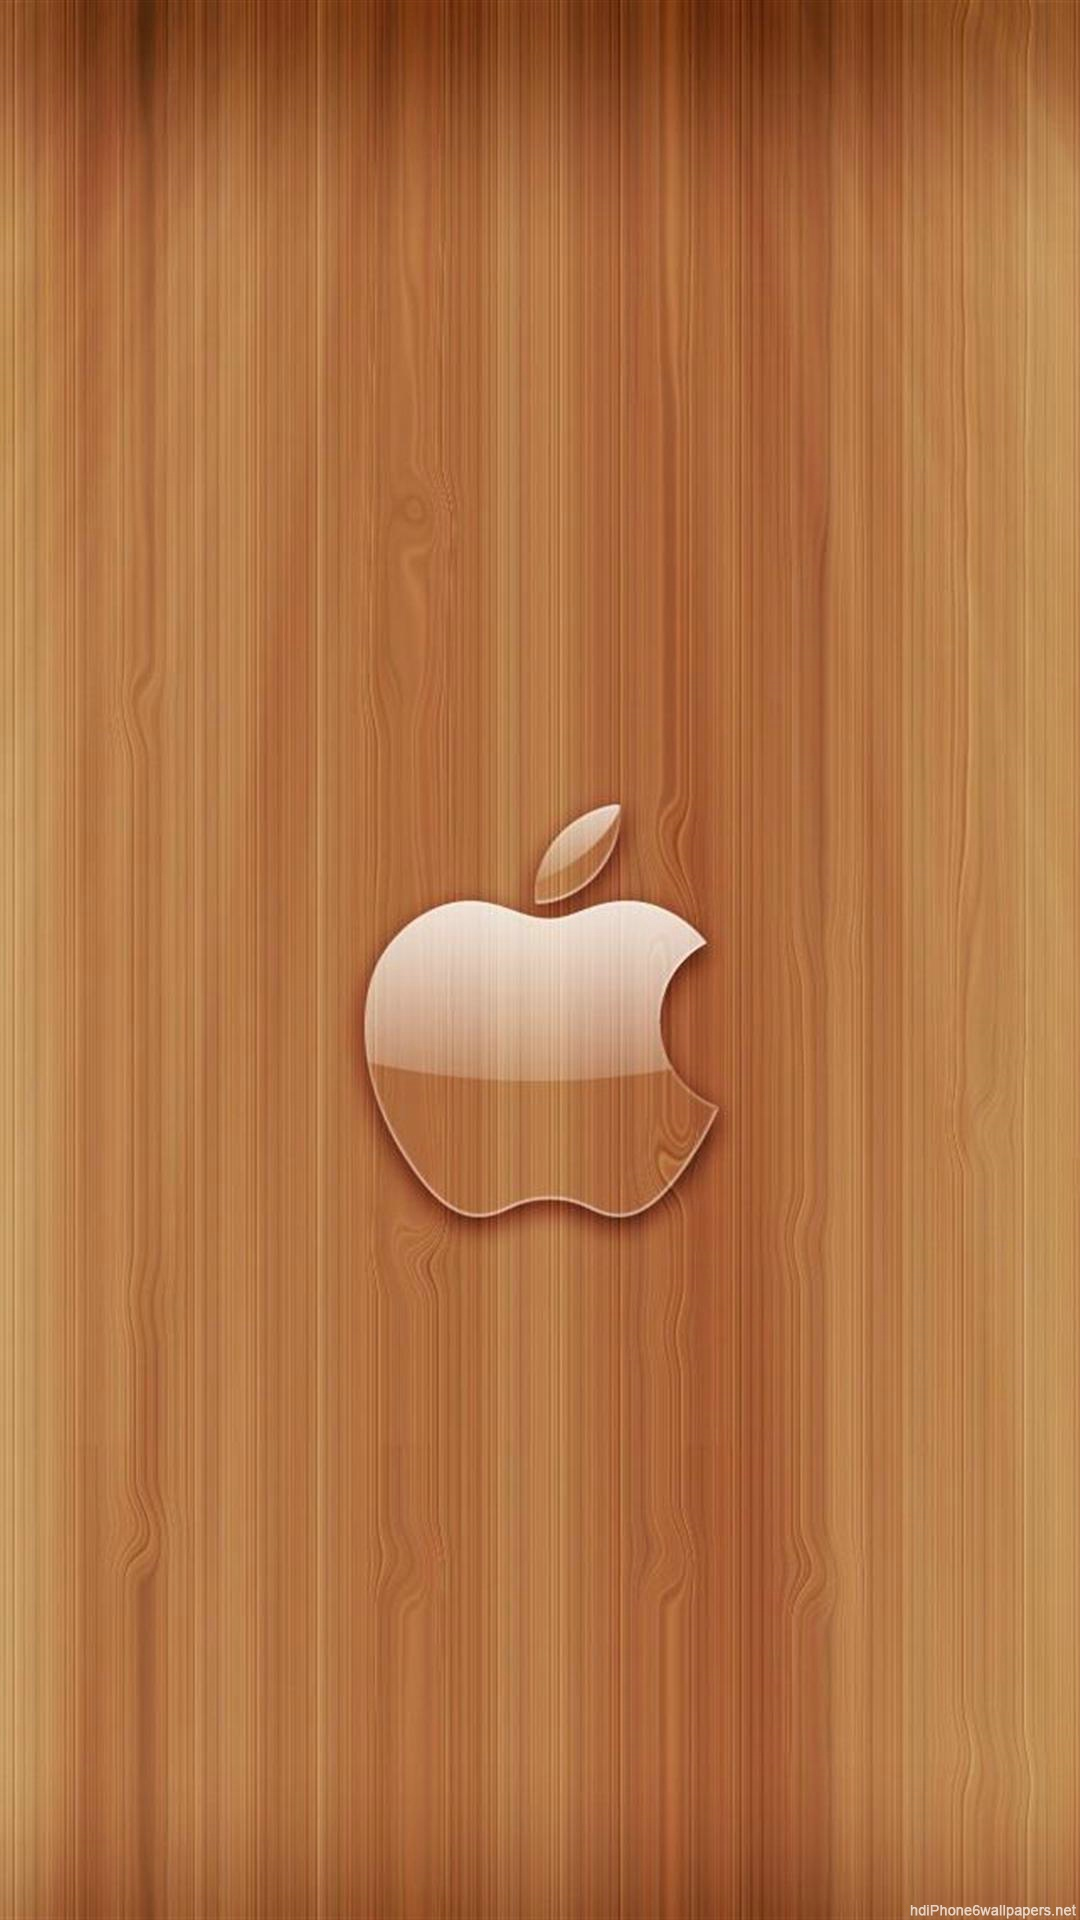 hd Iphone Wallpapers 1080p Iphone 6 Wallpapers hd 6 1080x1920